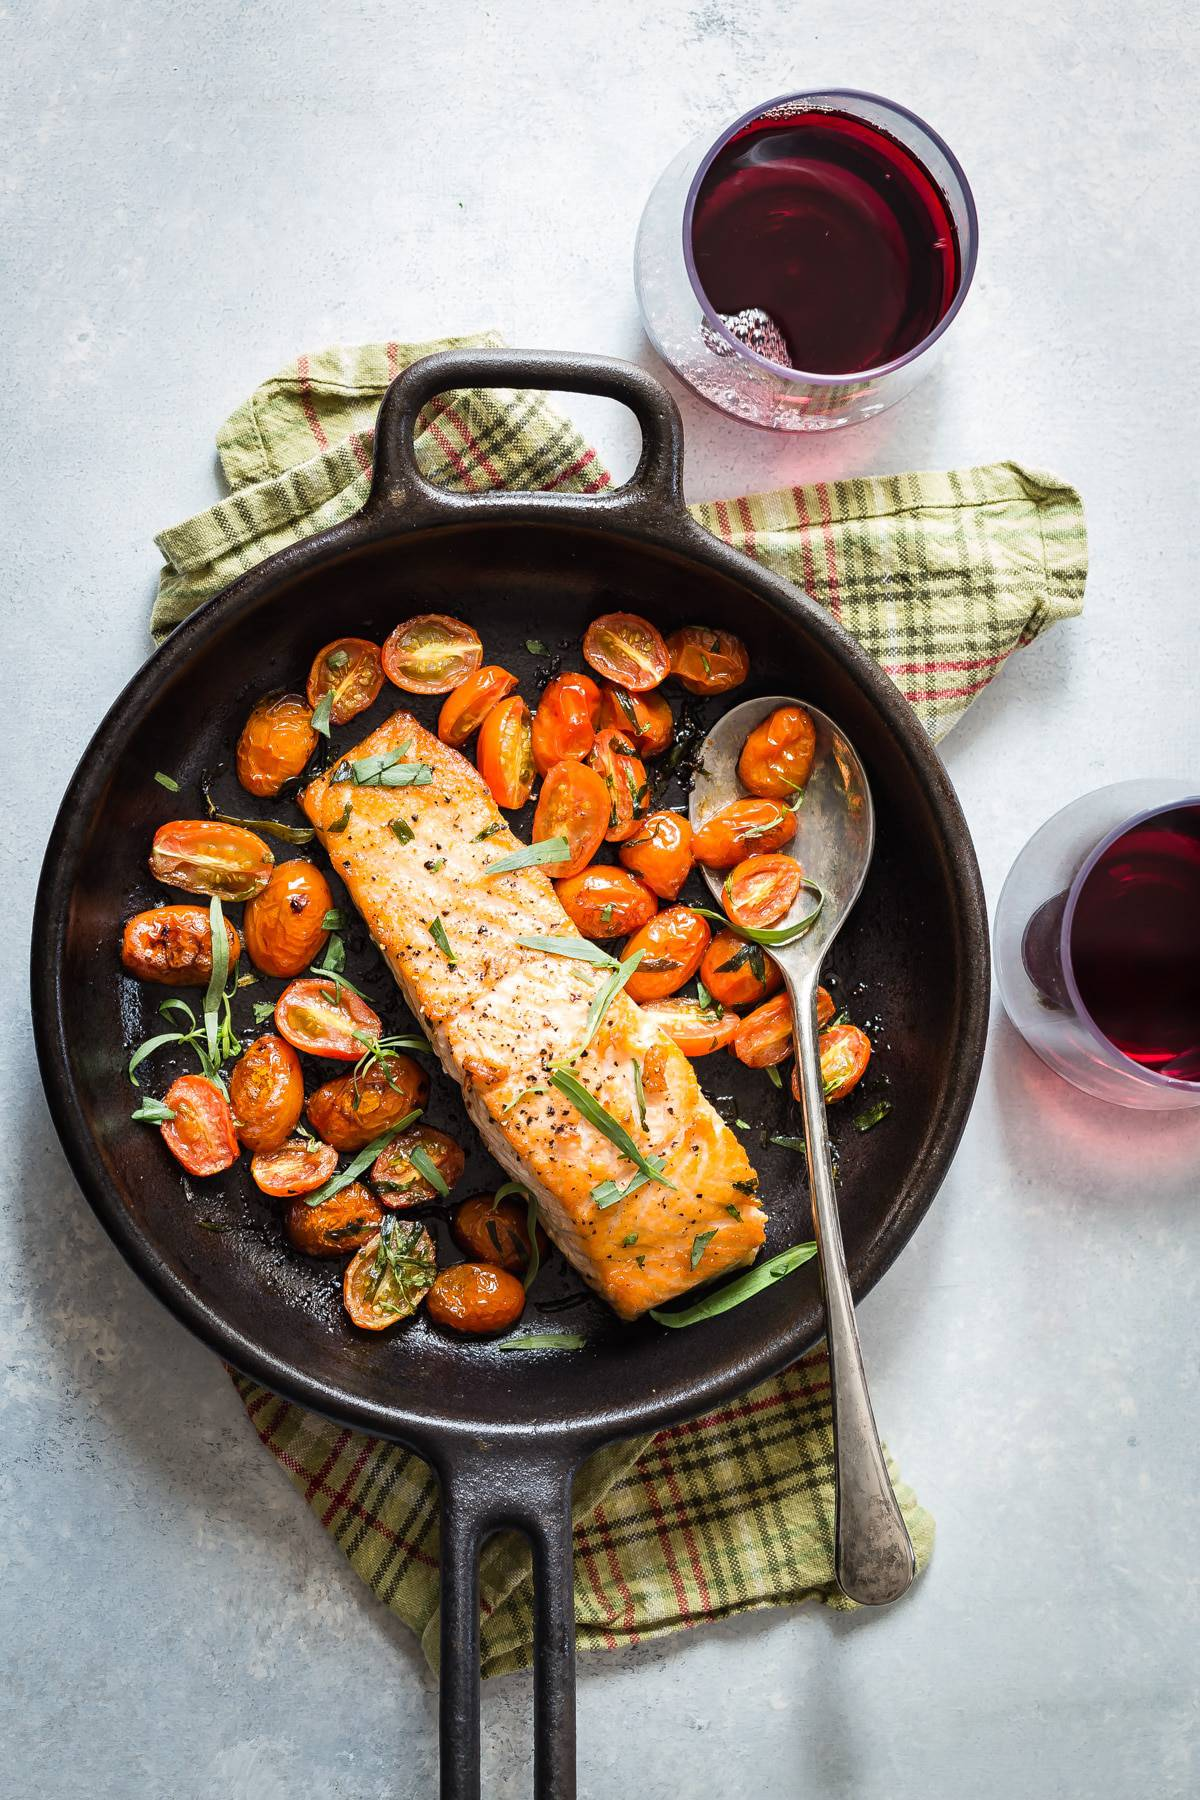 Probably The Best Seared Salmon You Will Ever Taste, And The Easiest To Cook!  Make This For A Fast But Healthy Dinner And Watch Everyone Ask For It Again